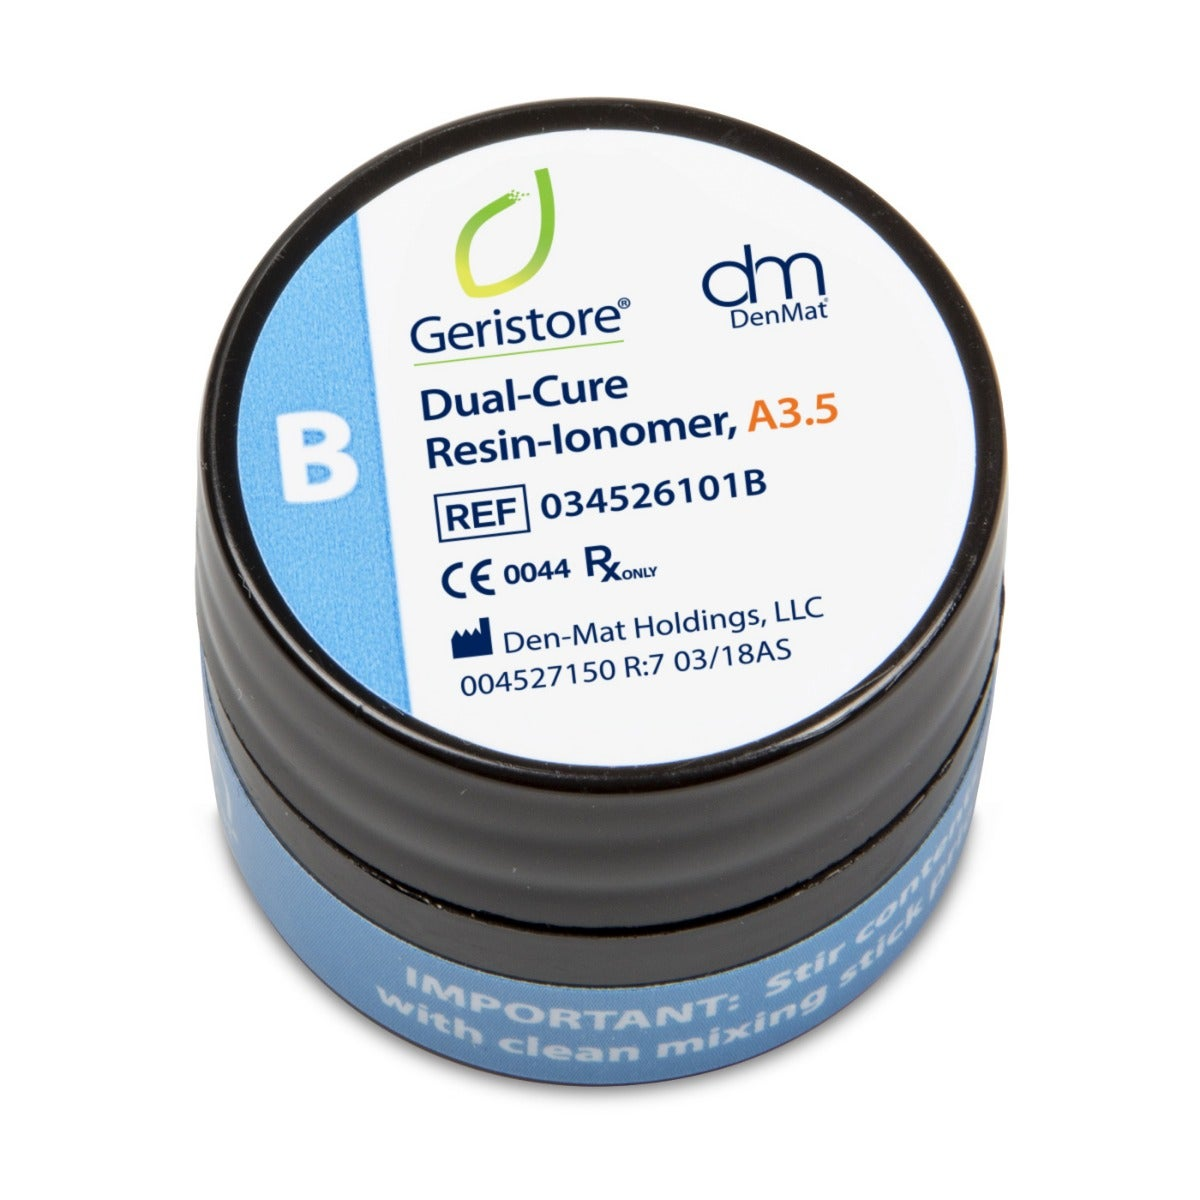 Dental Resin-Ionomer - Geristore  B Paste A3.5